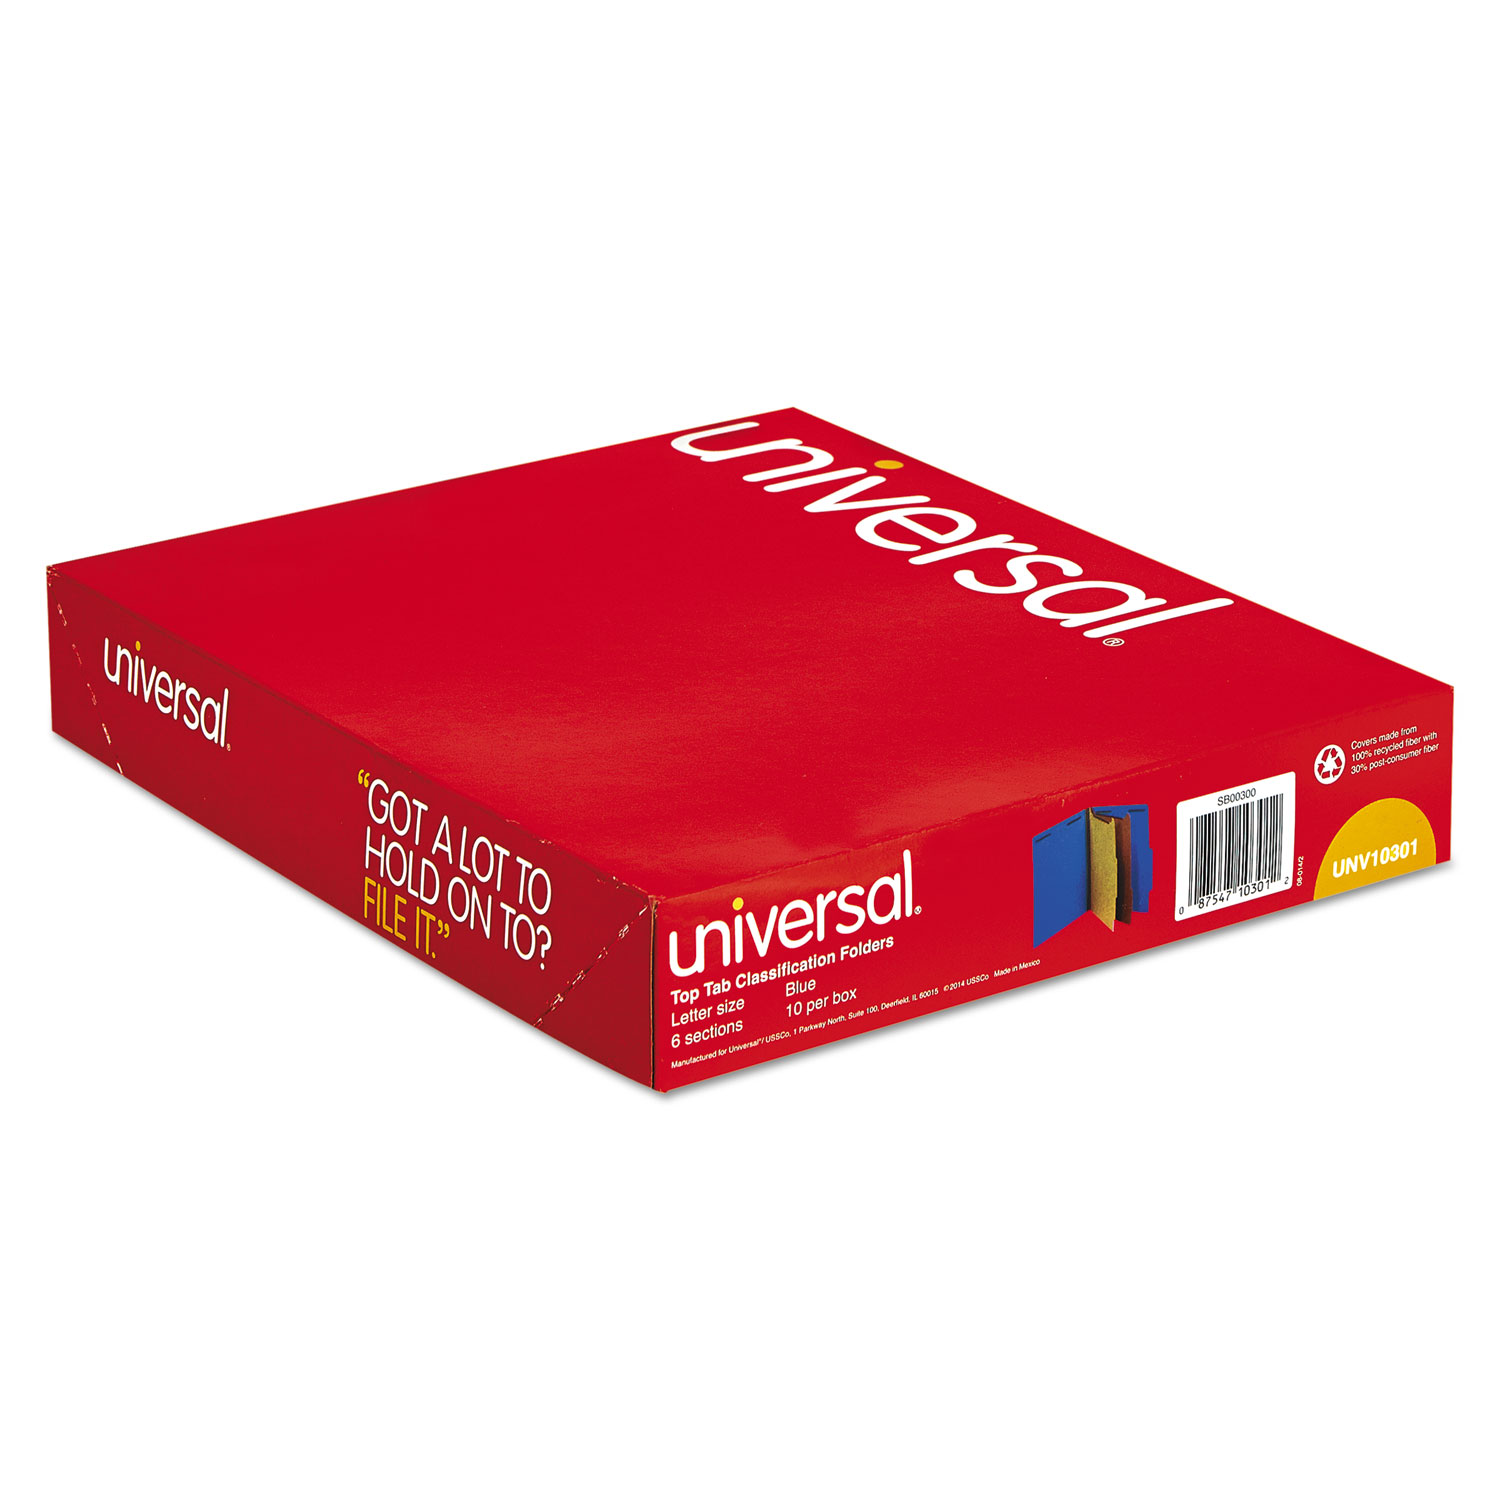 UNV10301 | Universal 10301, FREE Shipping - ACT Supplies | UNV10301